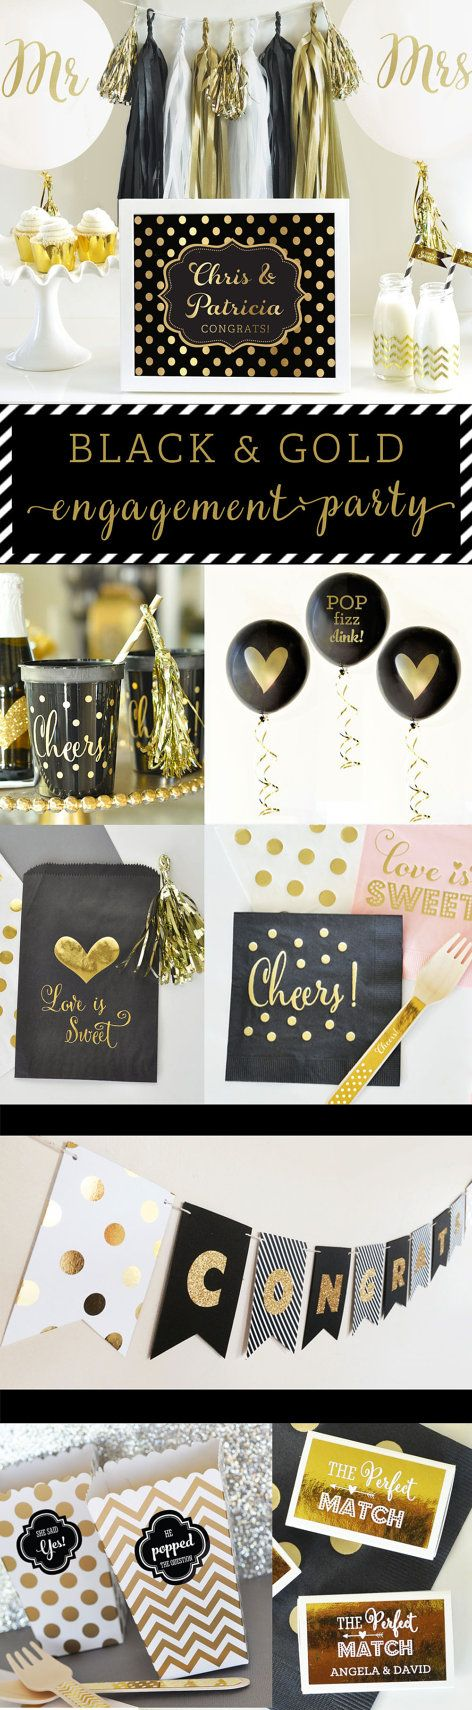 Engagement Photo Prop Engagement Party Ideas Bridal by ModParty